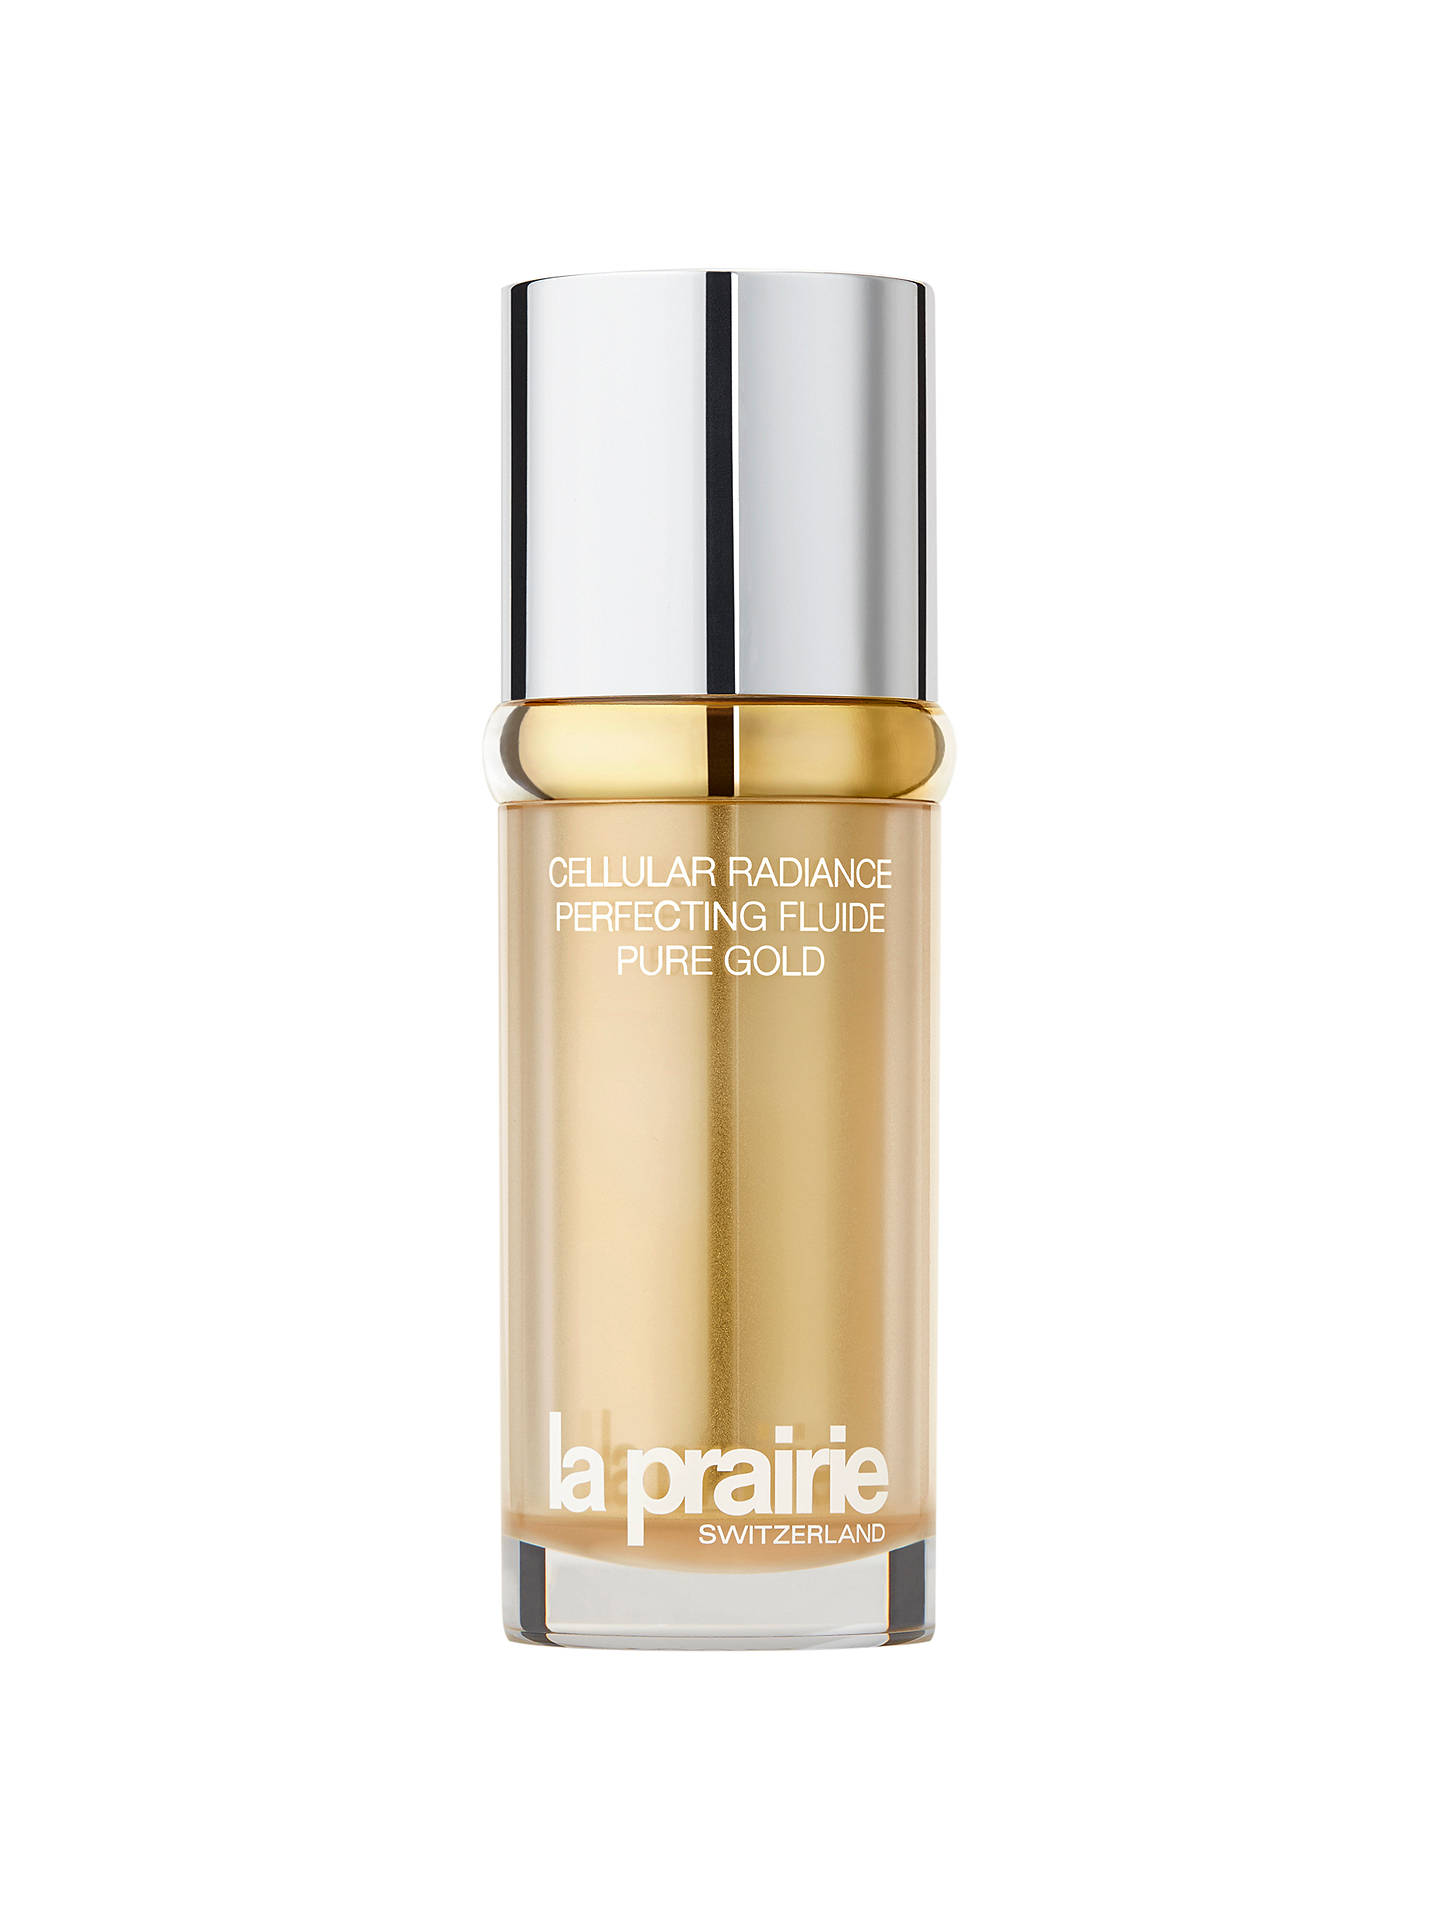 Buy La Prairie Cellular Radiance Perfecting Fluide Pure Gold, 40ml Online at johnlewis.com